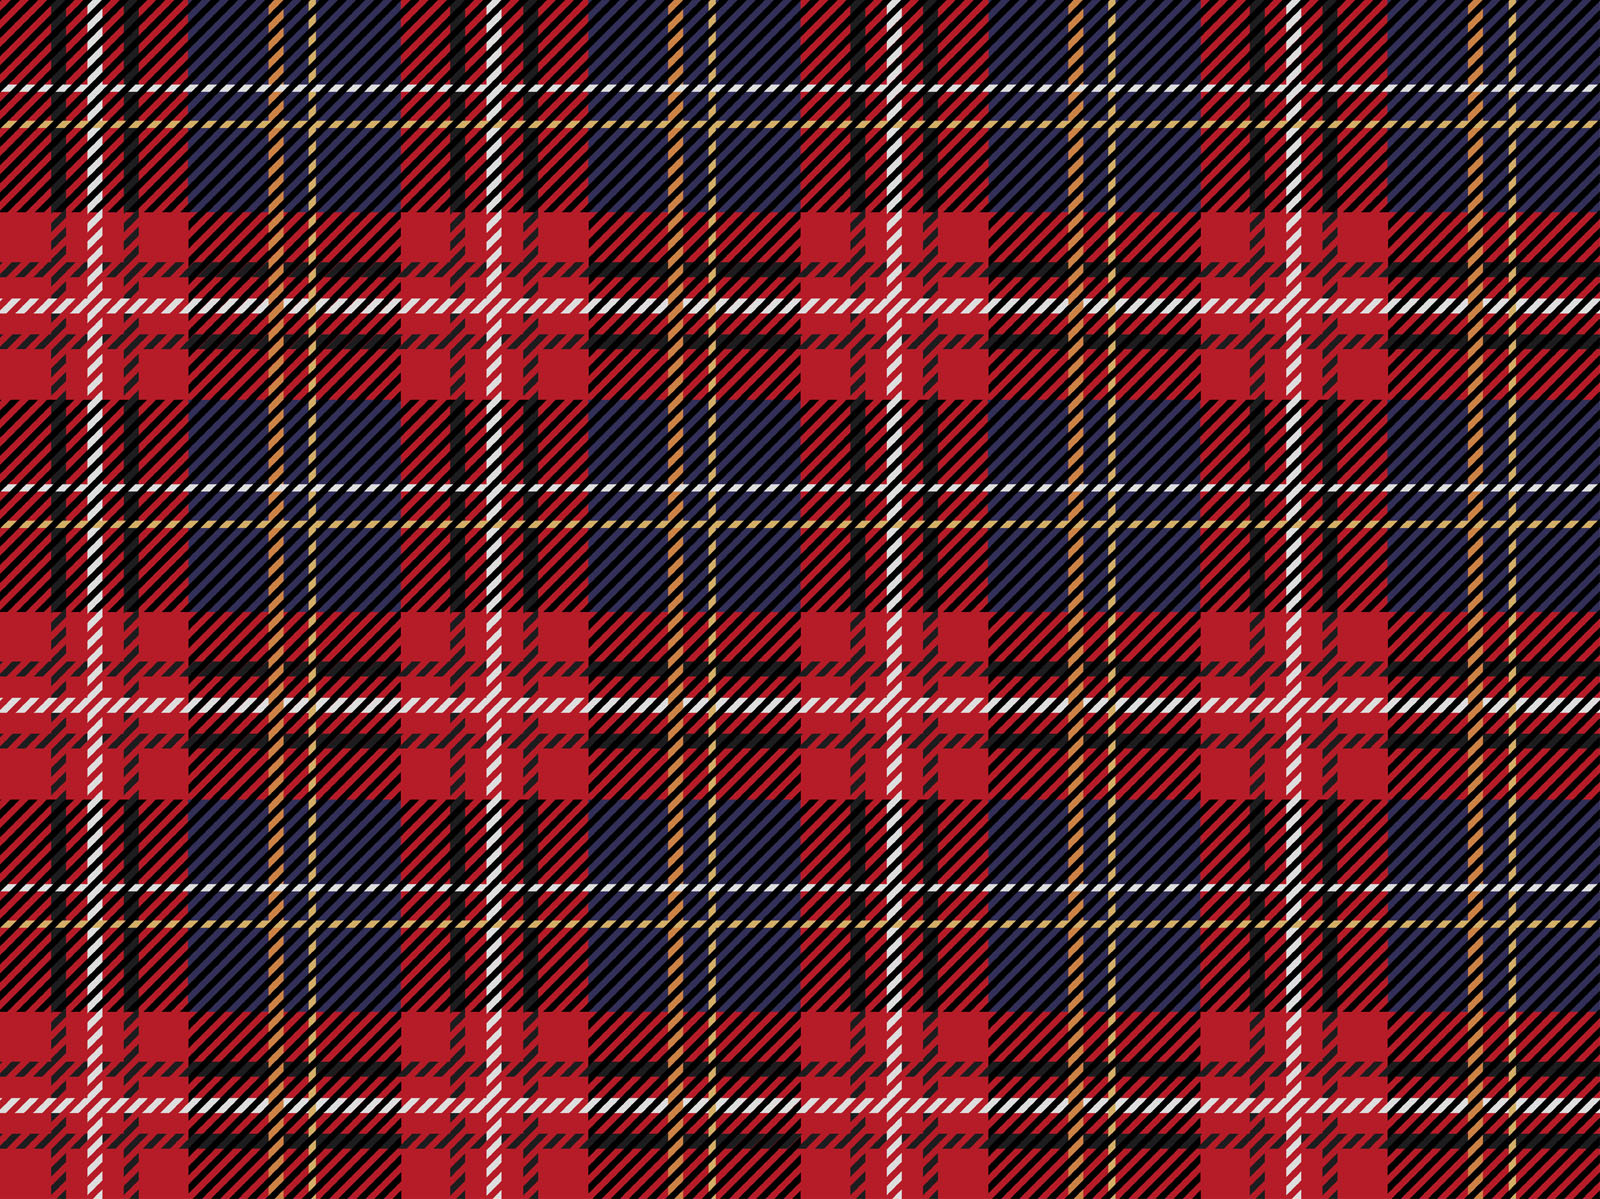 Seamless Tartan Plaid Vector Illustration Download